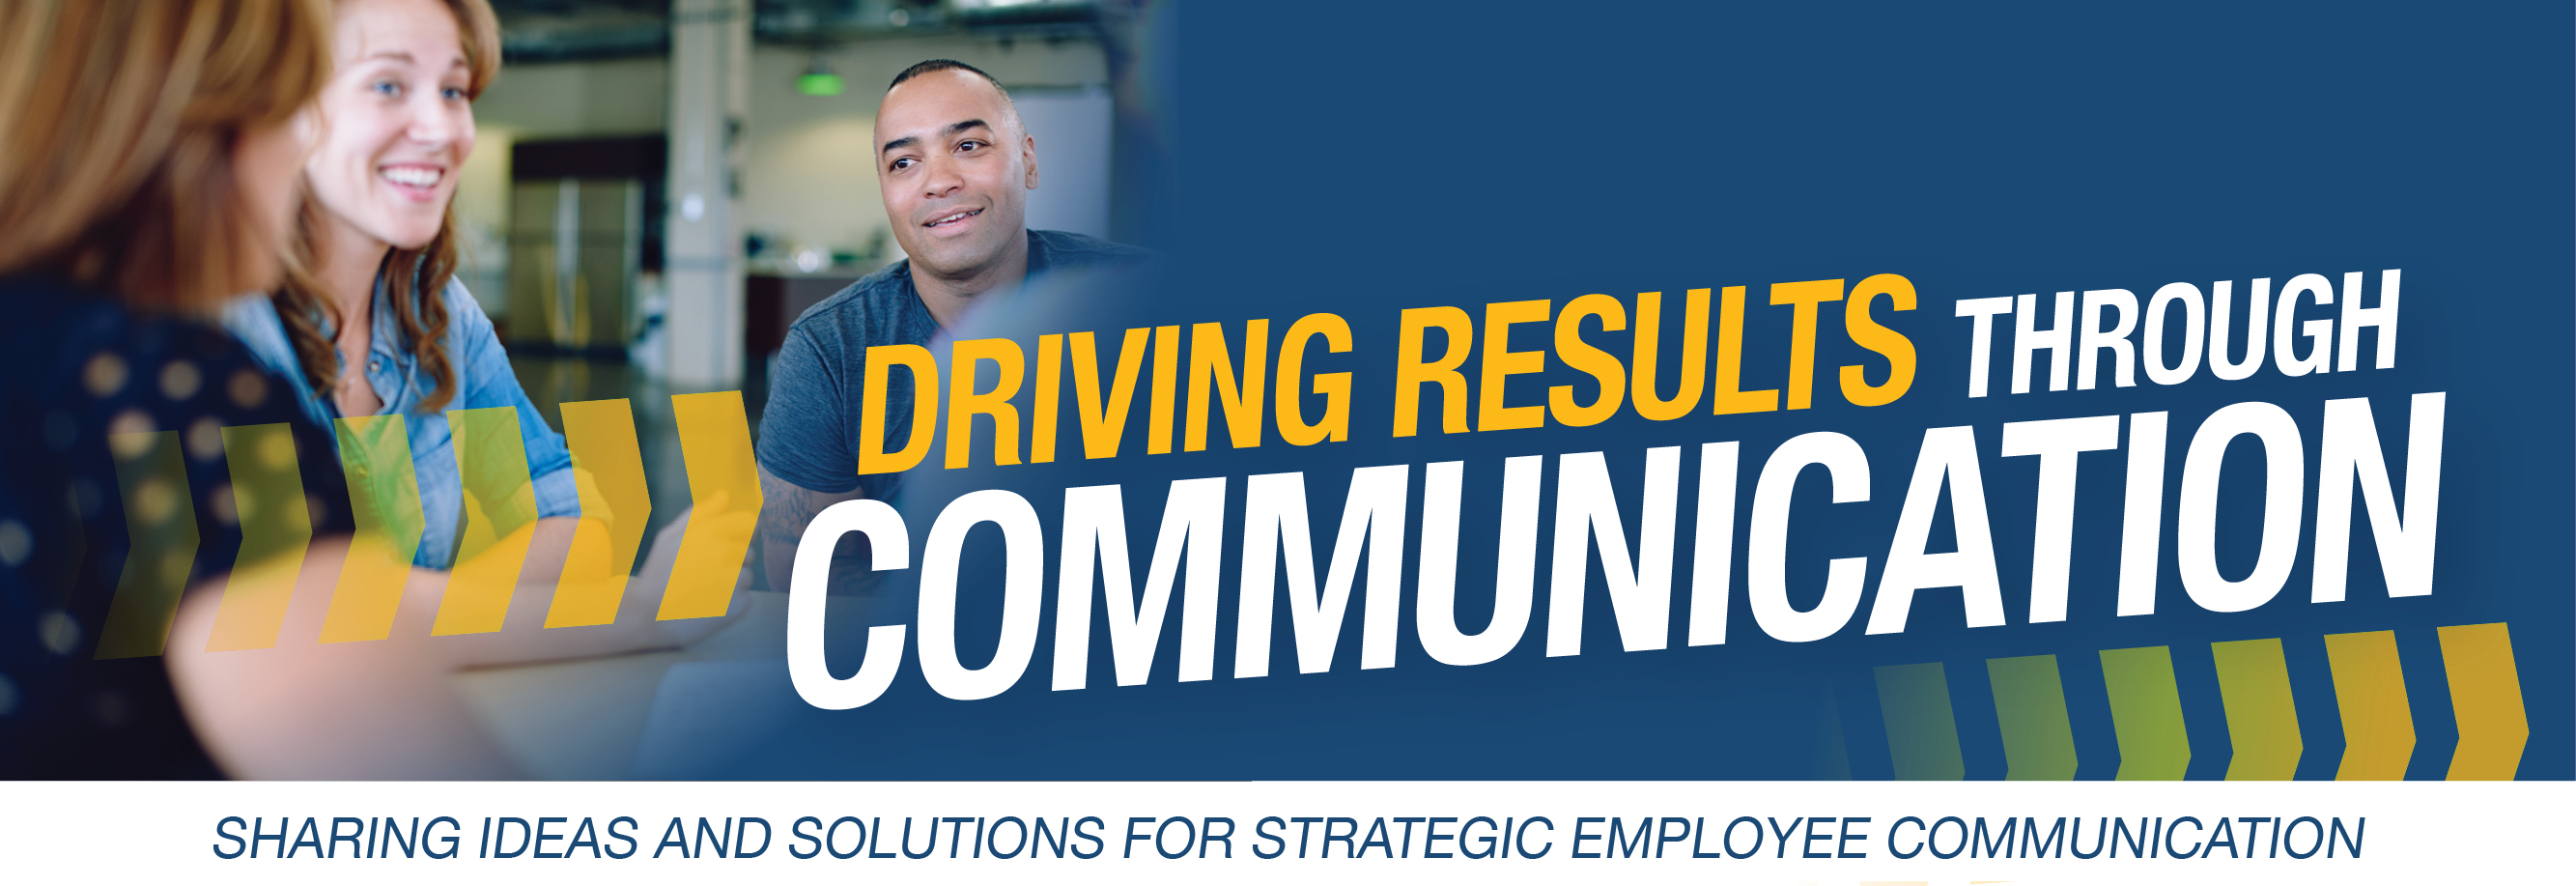 Tip #9 Driving Results Through Communication